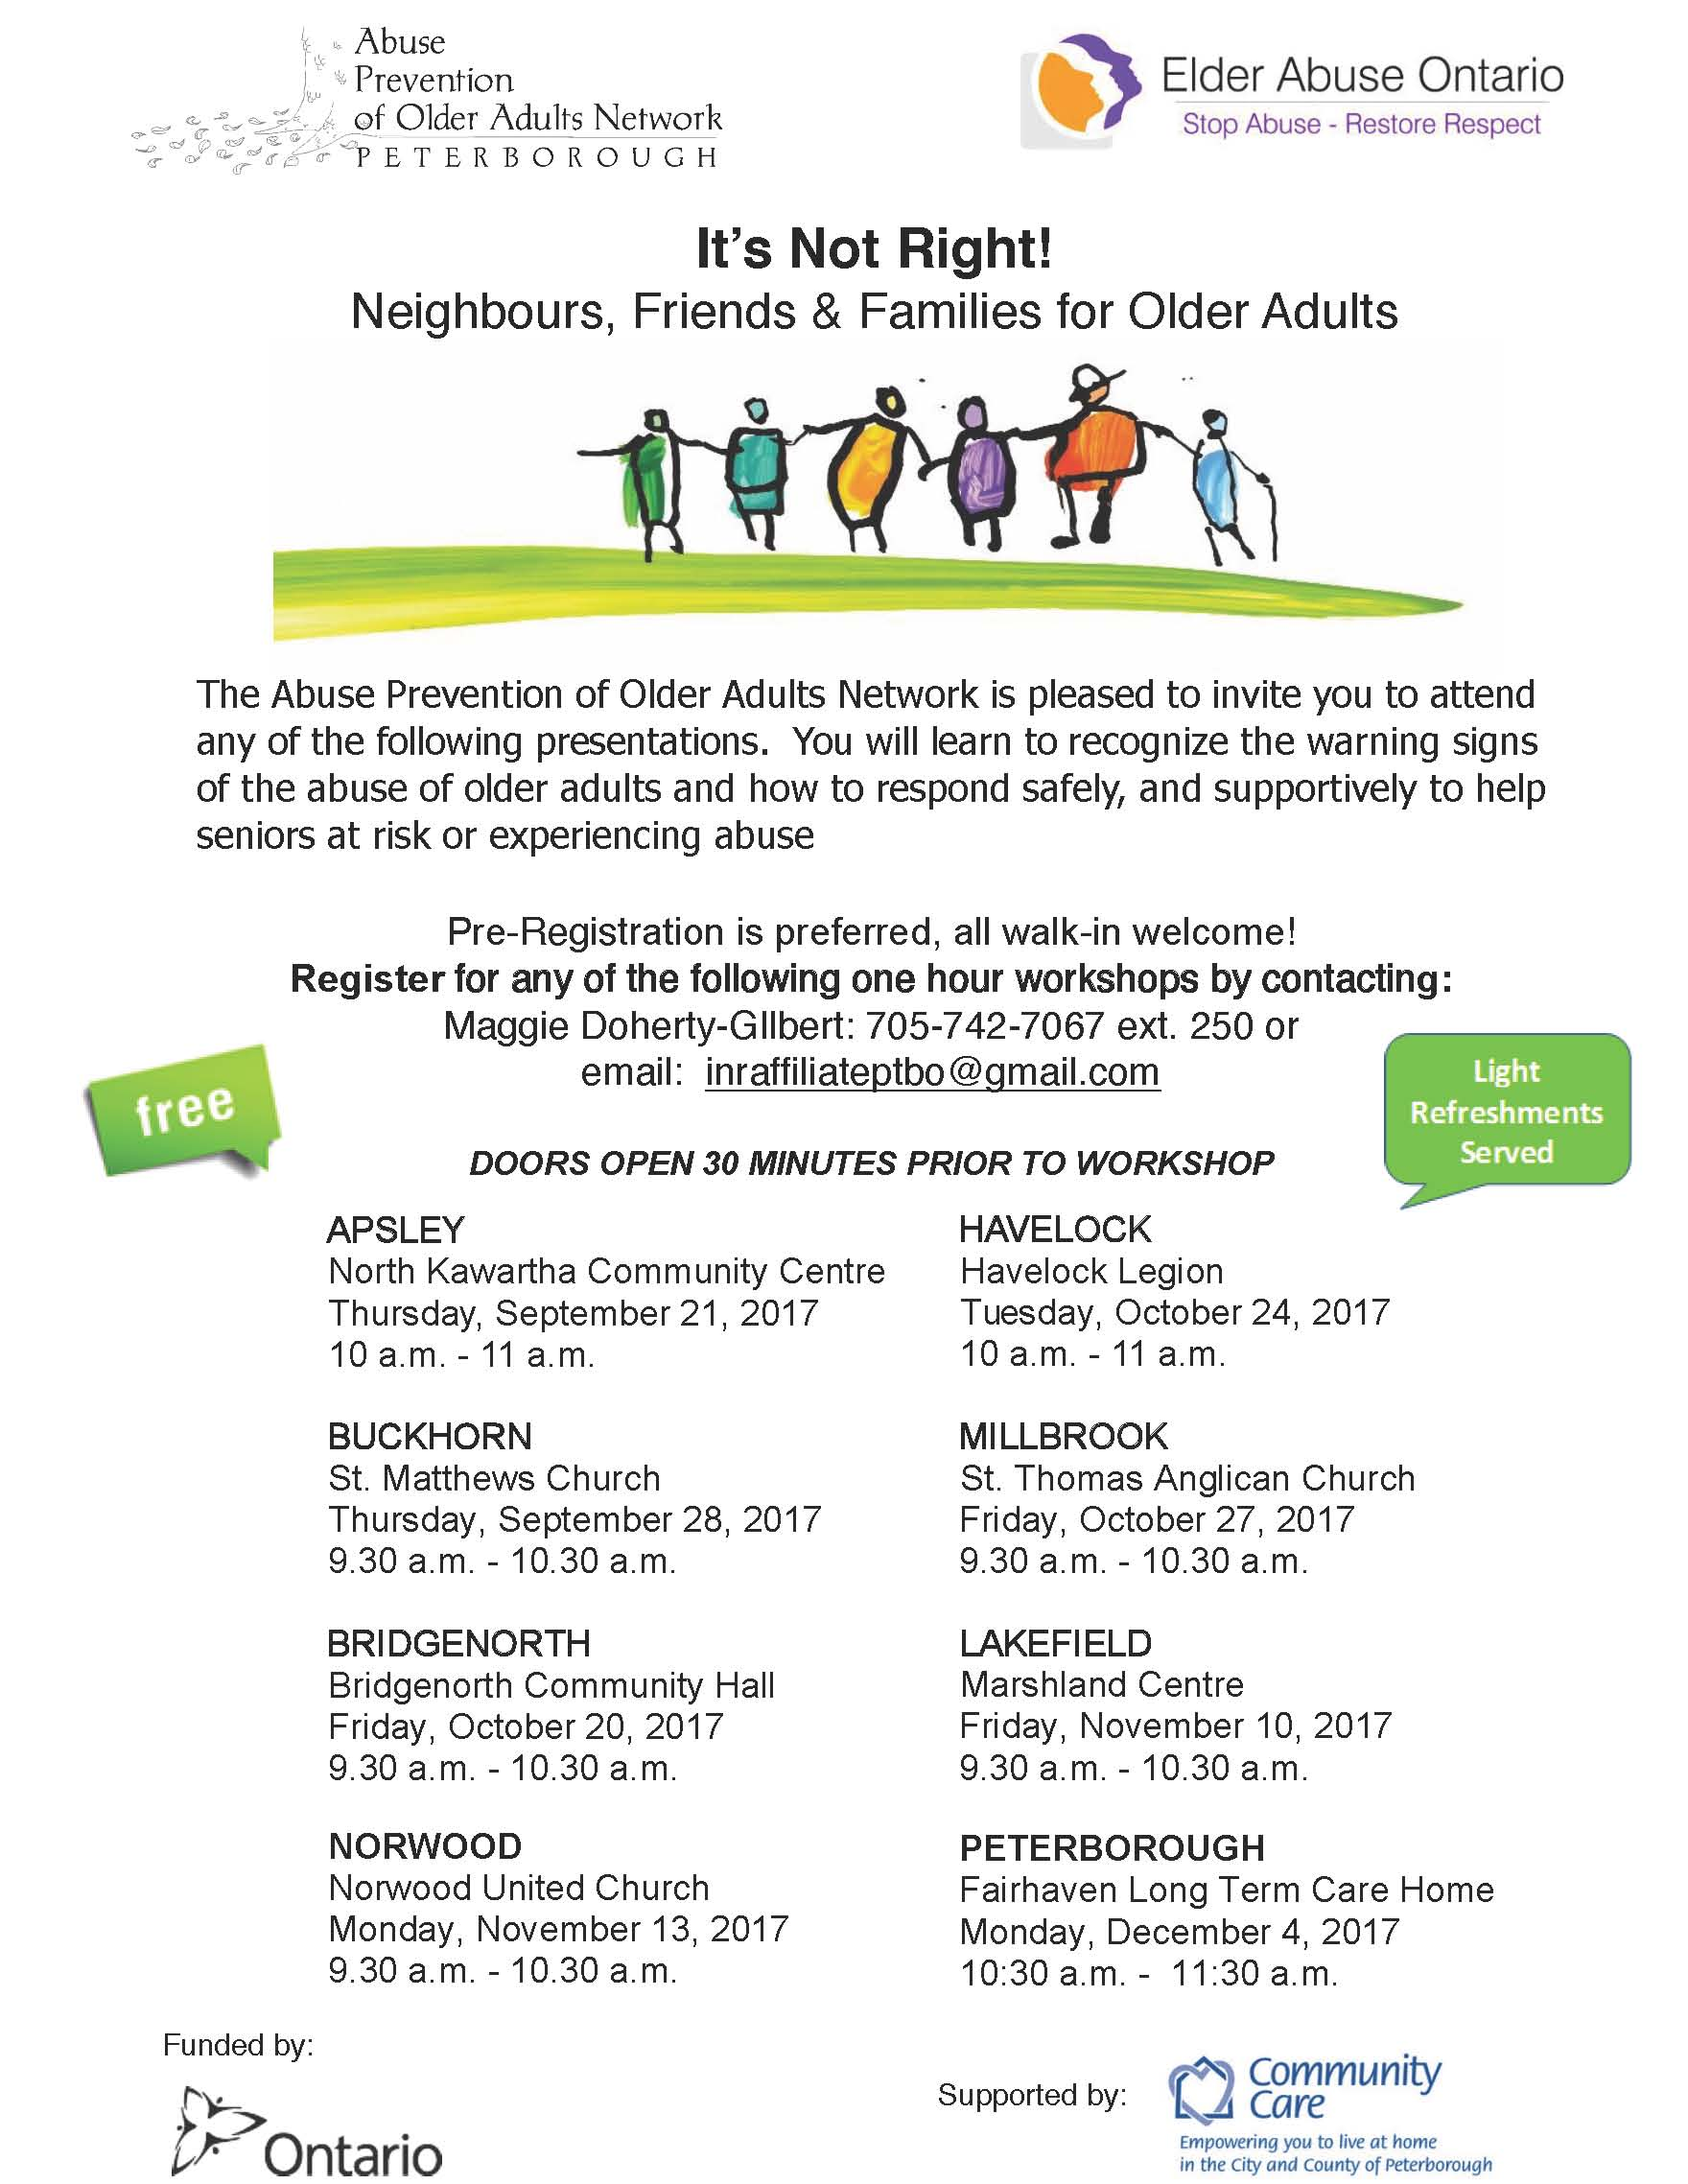 Elder Abuse Community Sessions